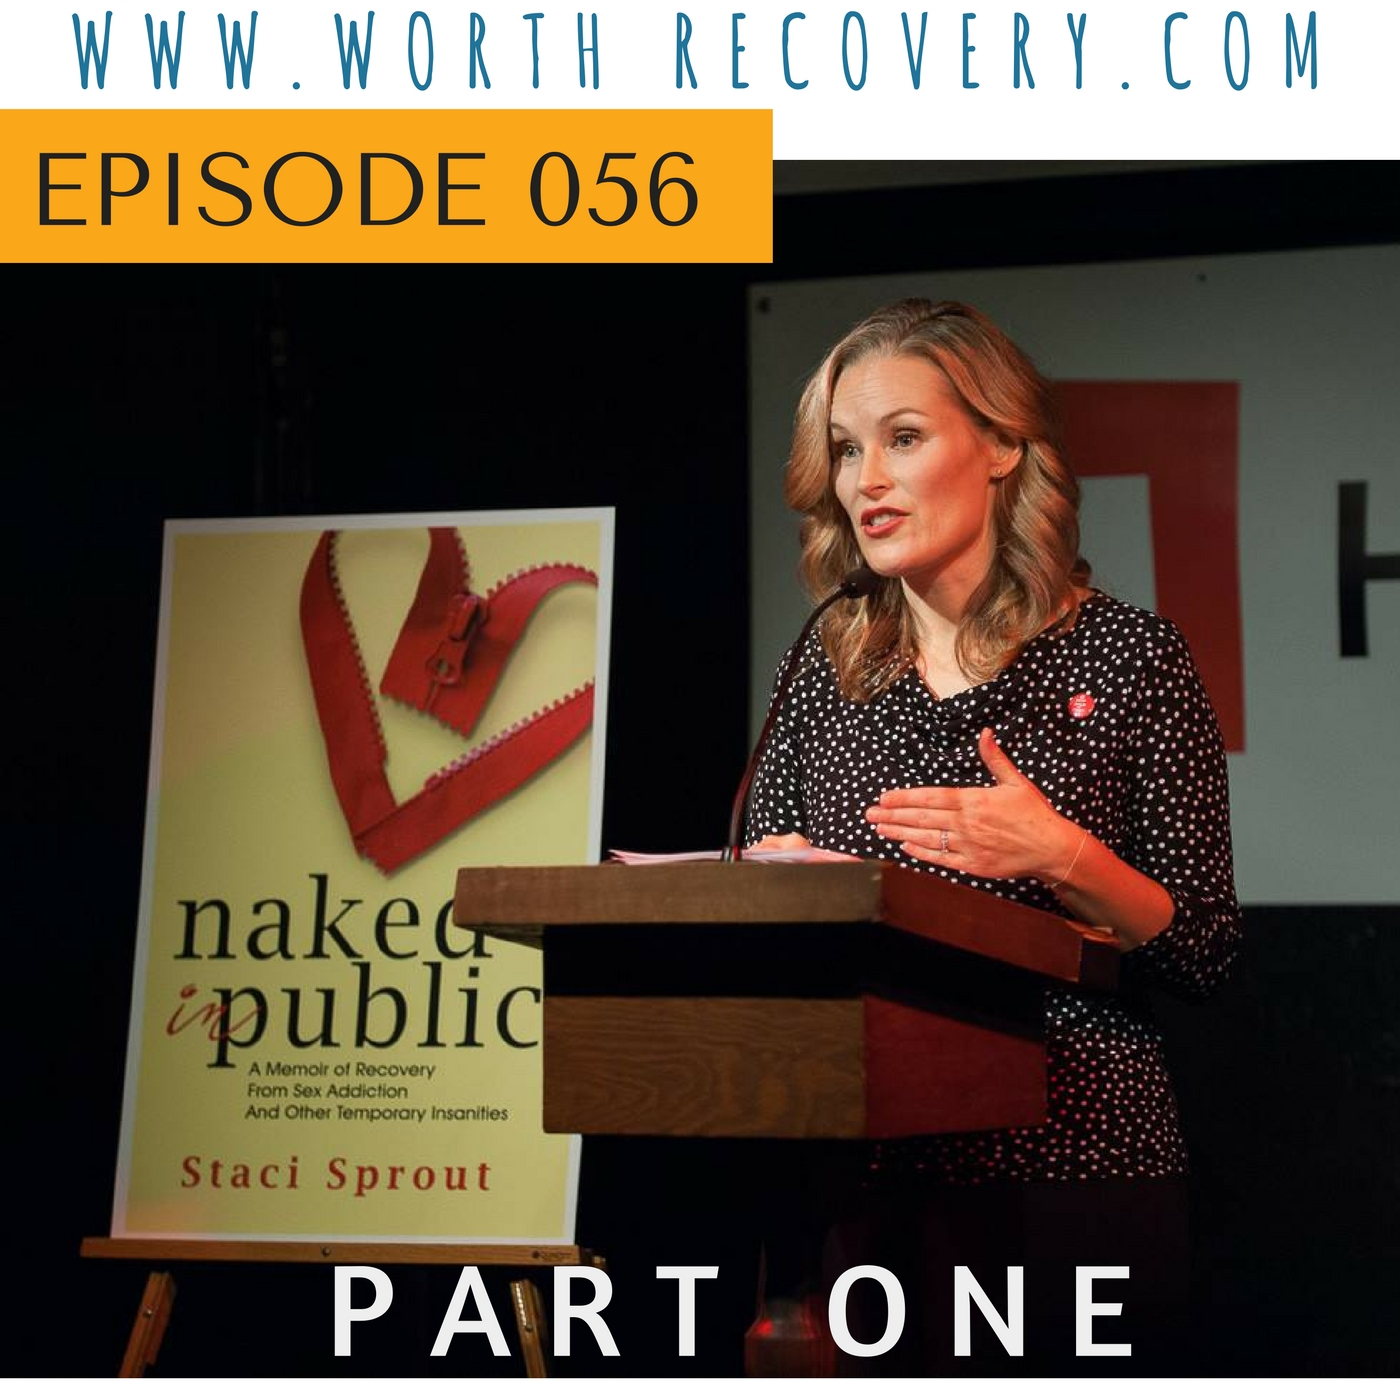 I HAD THE PLEASURE OF TALKING WITH AMY SMITH OF WORTH RECOVERY FOR HER EXCELLENT PODCAST ABOUT WOMEN AND SEX ADDICTION RECOVERY. THE TALK IS DIVIDED INTO THREE PARTS, CLICK ON THE IMAGE above TO HEAR THE TALKS.